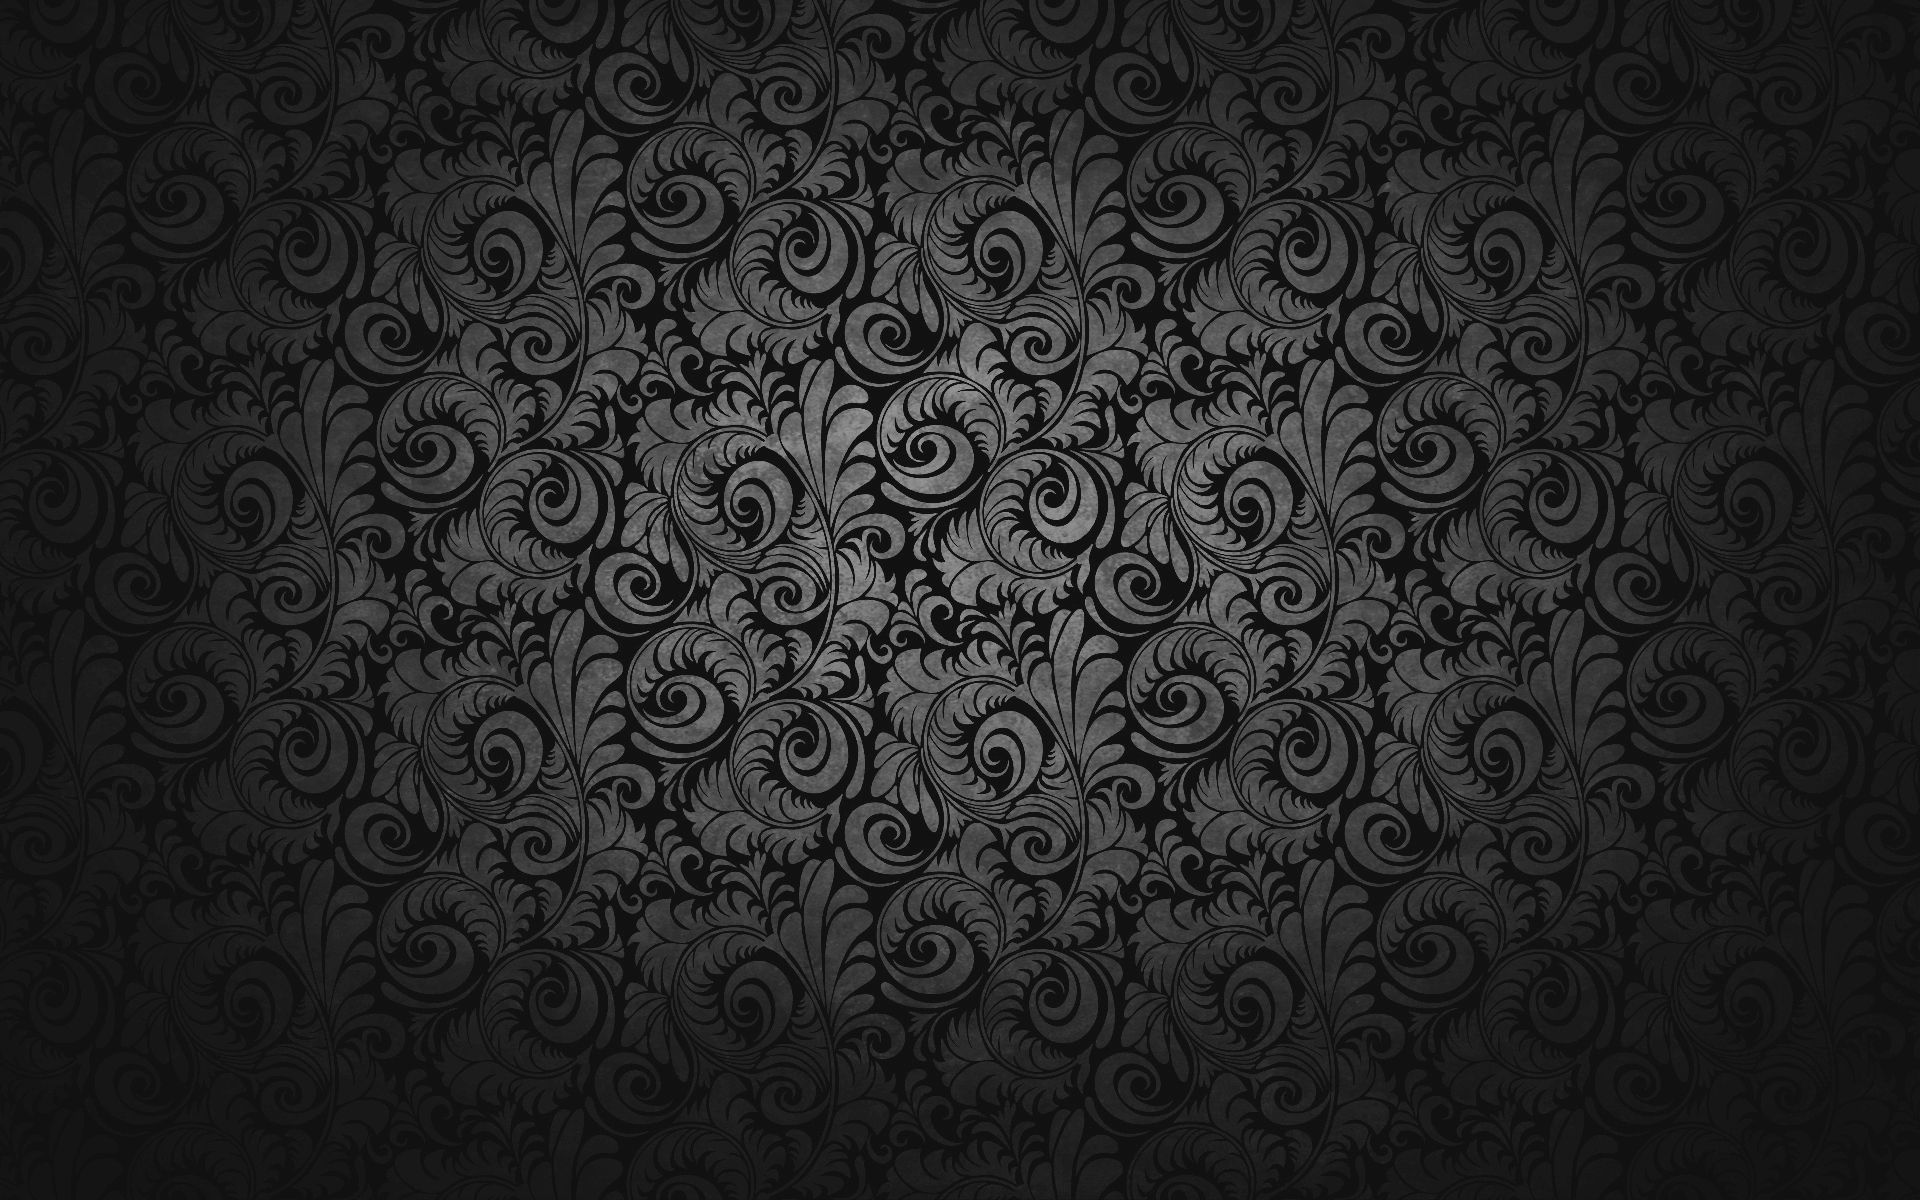 Hd wallpaper pattern - Black Background Hd Wallpaper 1191011